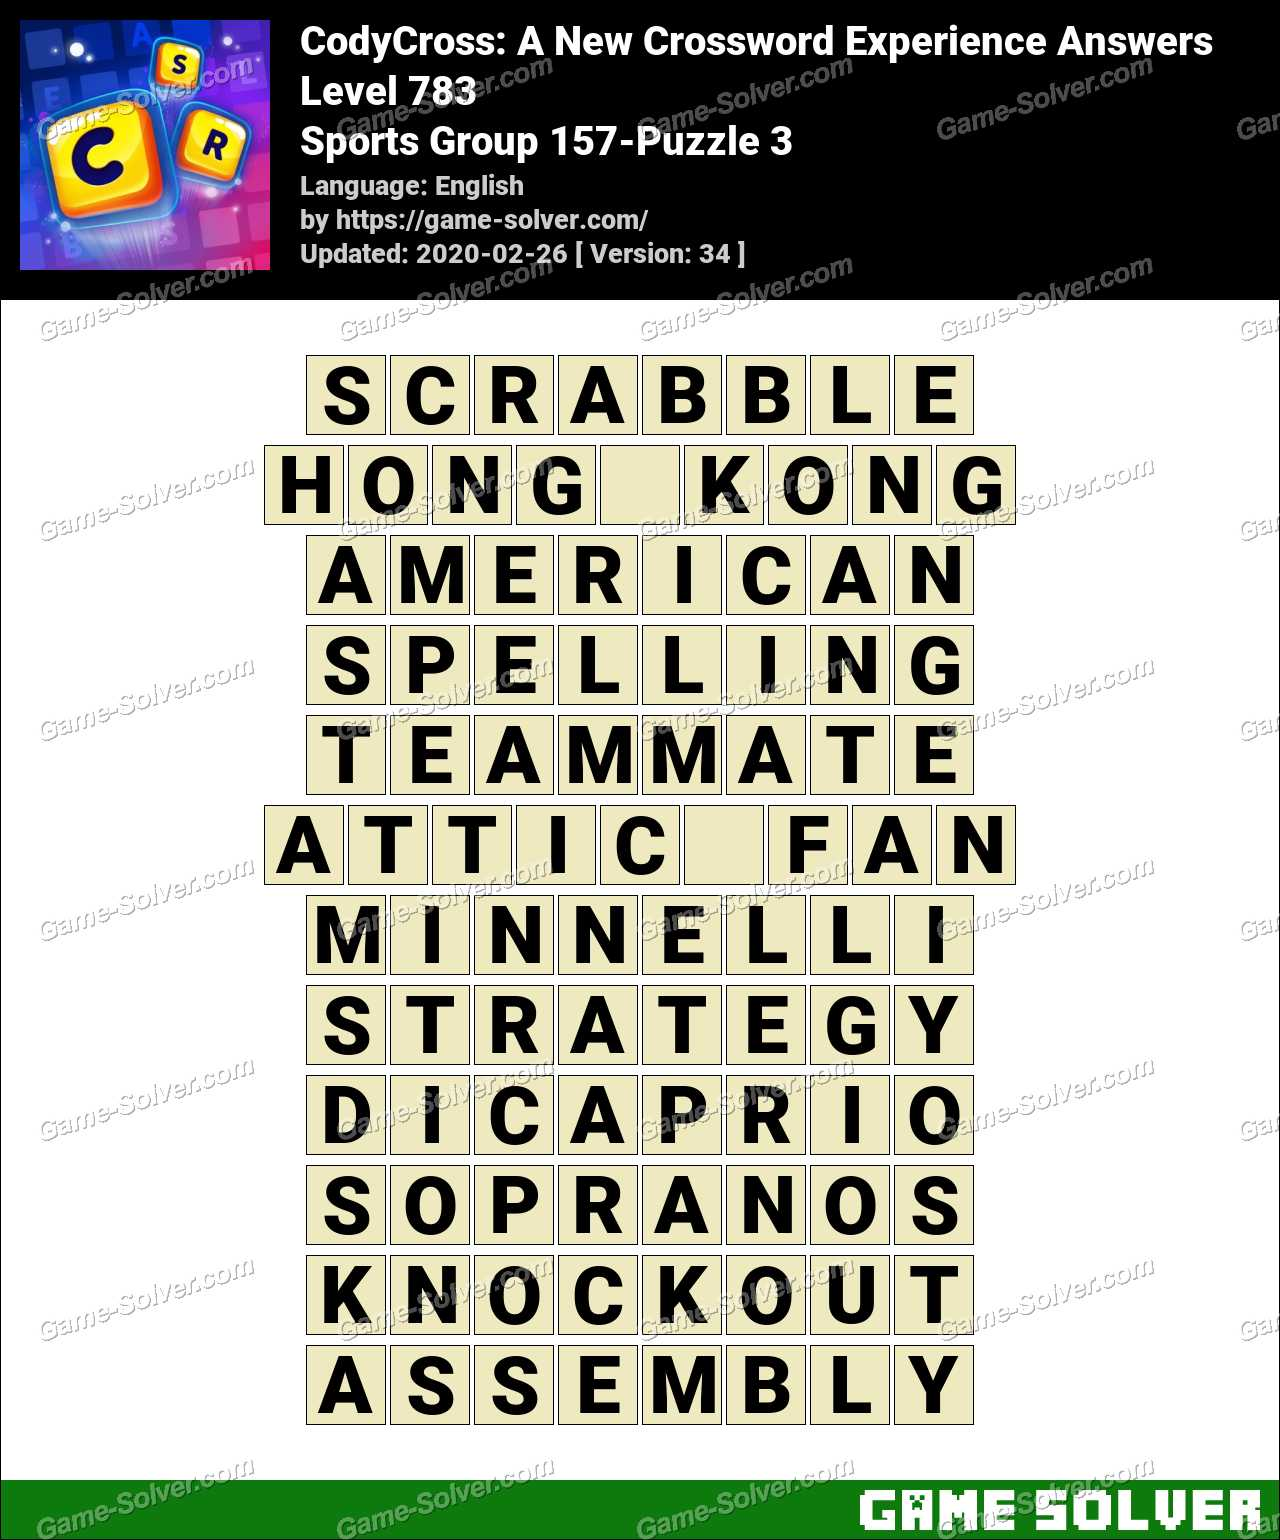 CodyCross Sports Group 157-Puzzle 3 Answers